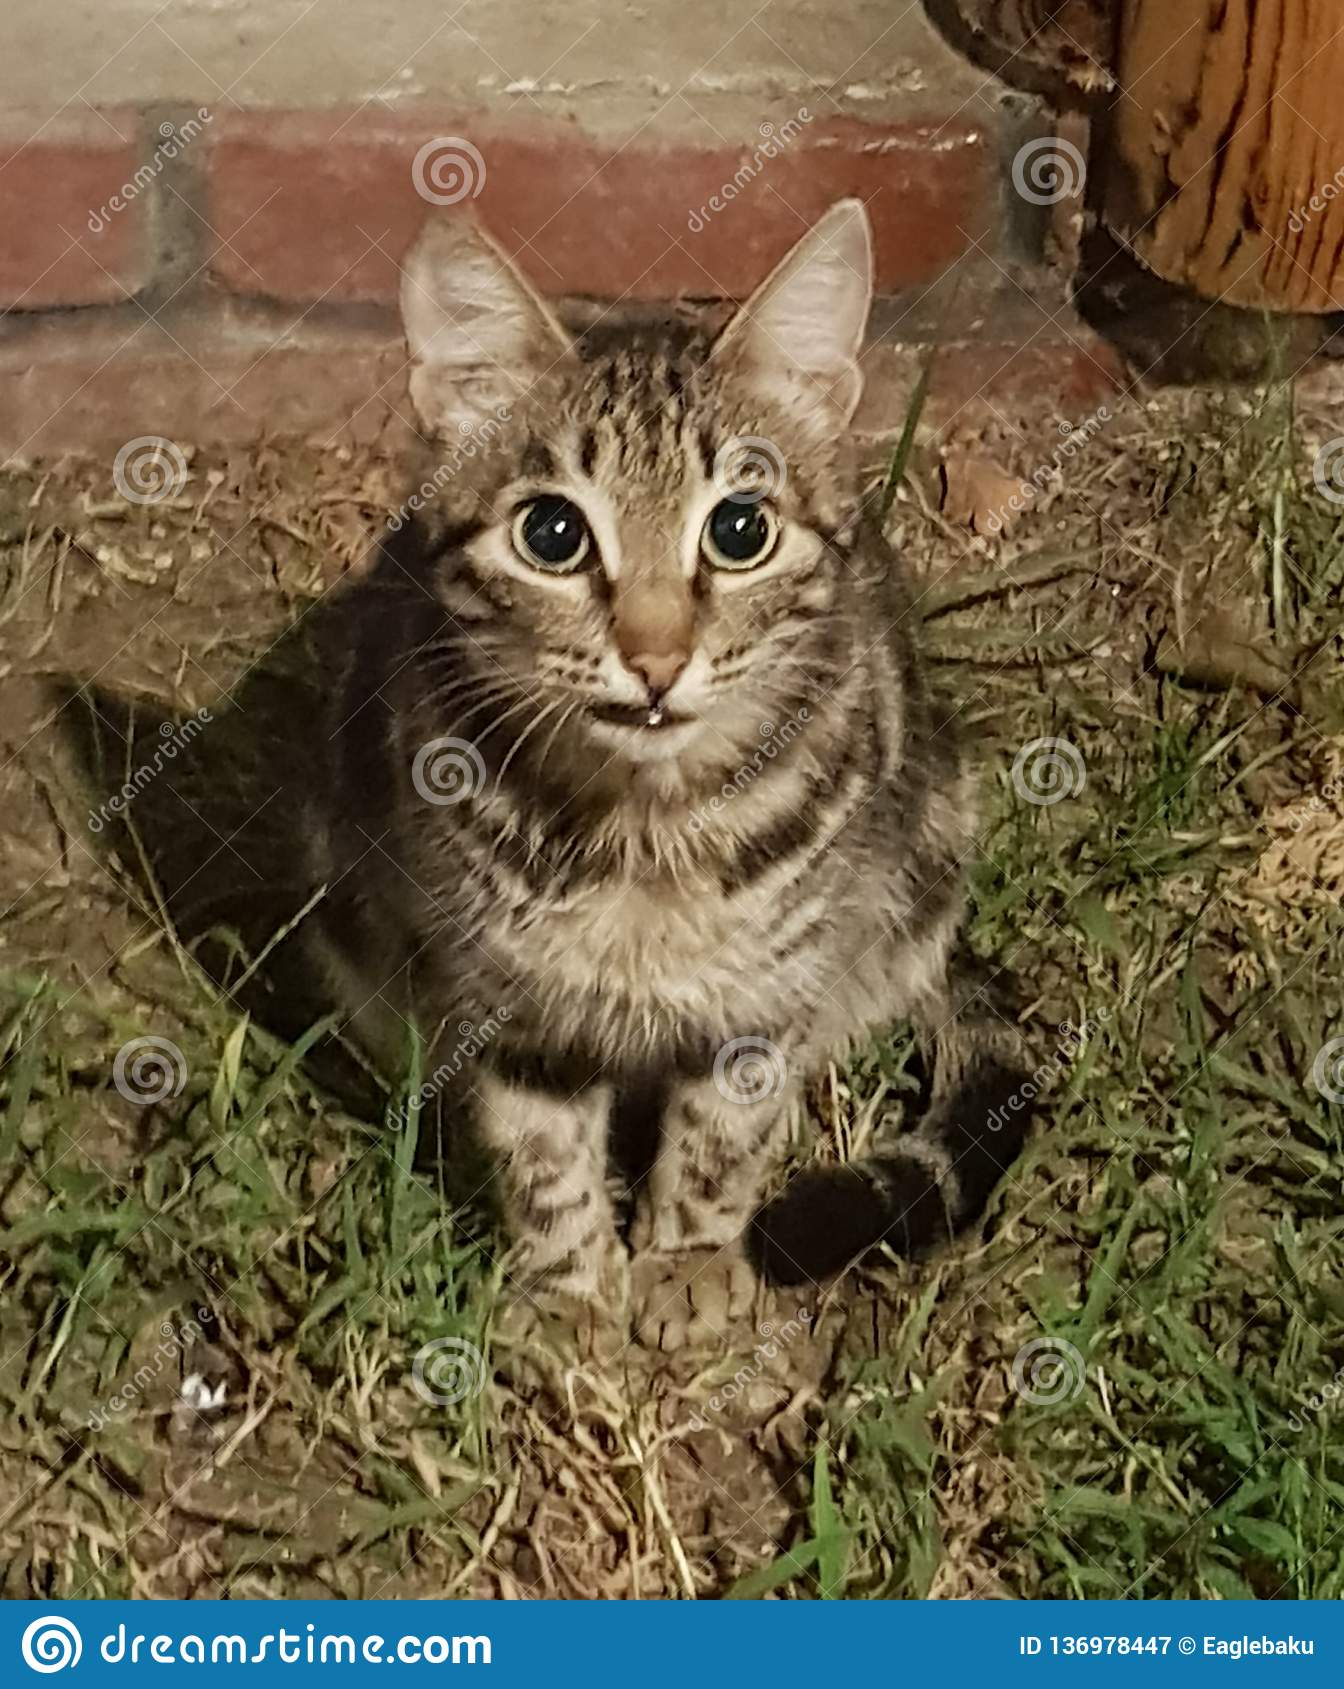 A grinning cat with a displeased glance sits on the grass near the yard on the background of a red brick wall and looks into the